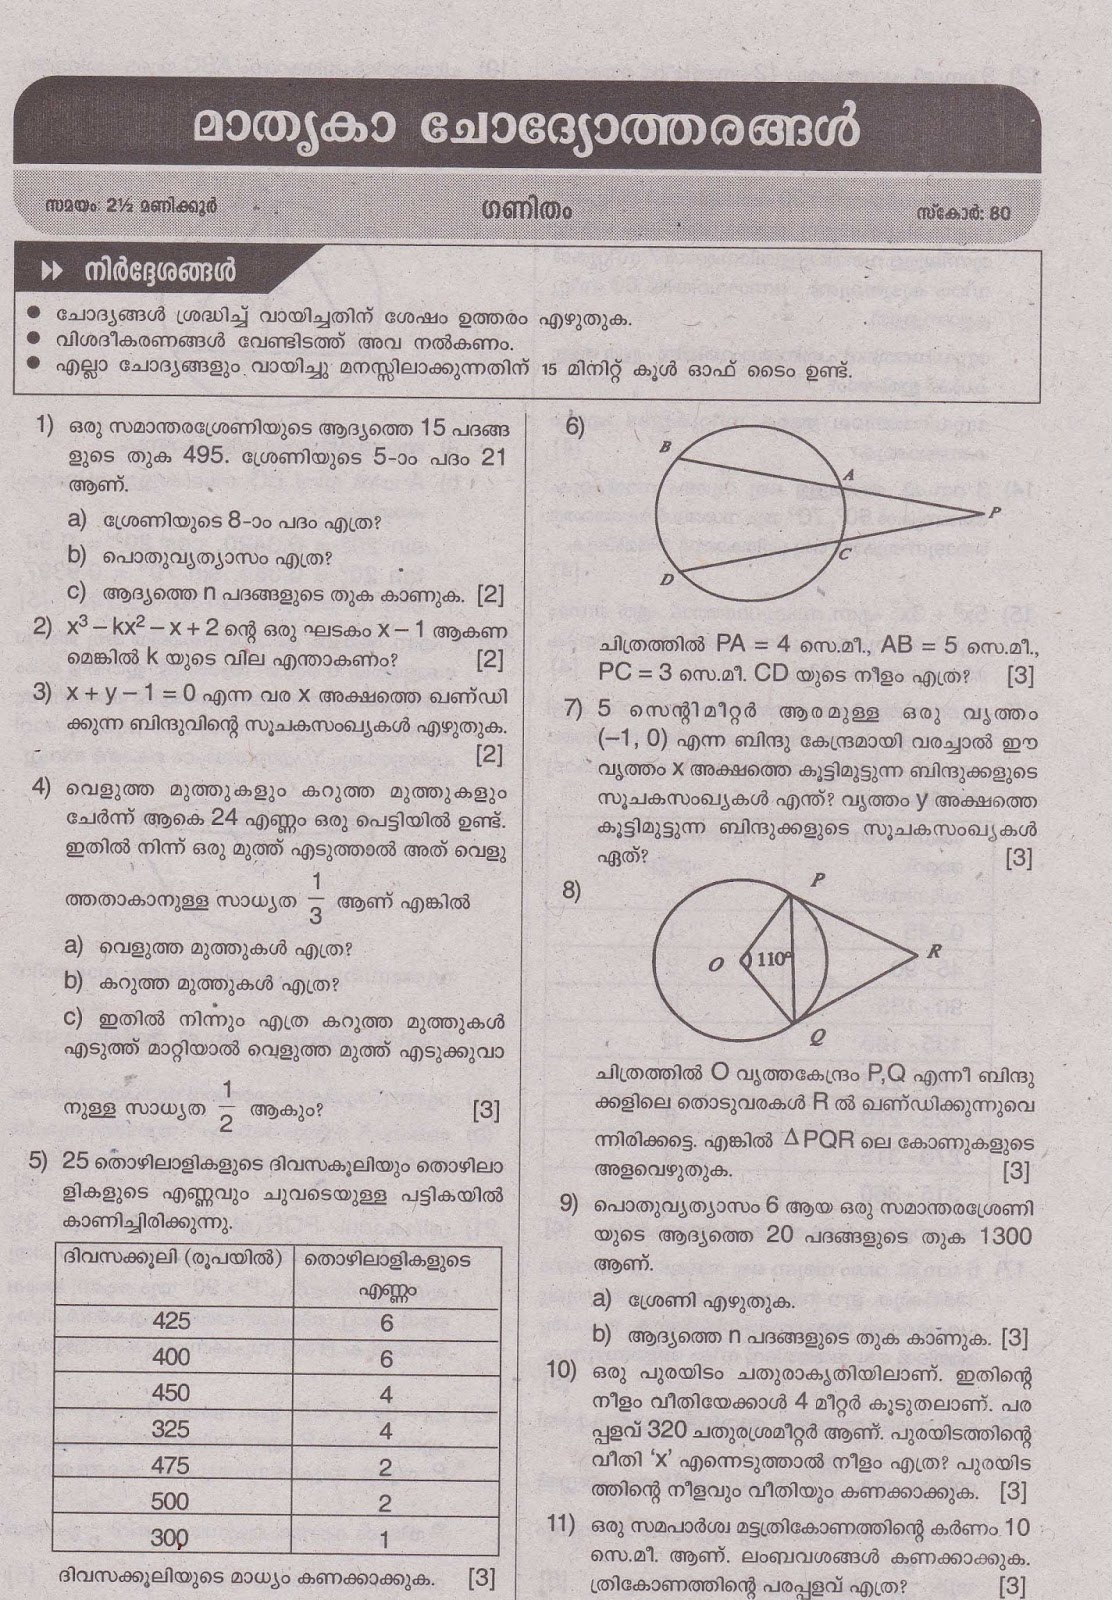 Sslc question paper sslc question paper mathematics sslc question paper maths malvernweather Image collections